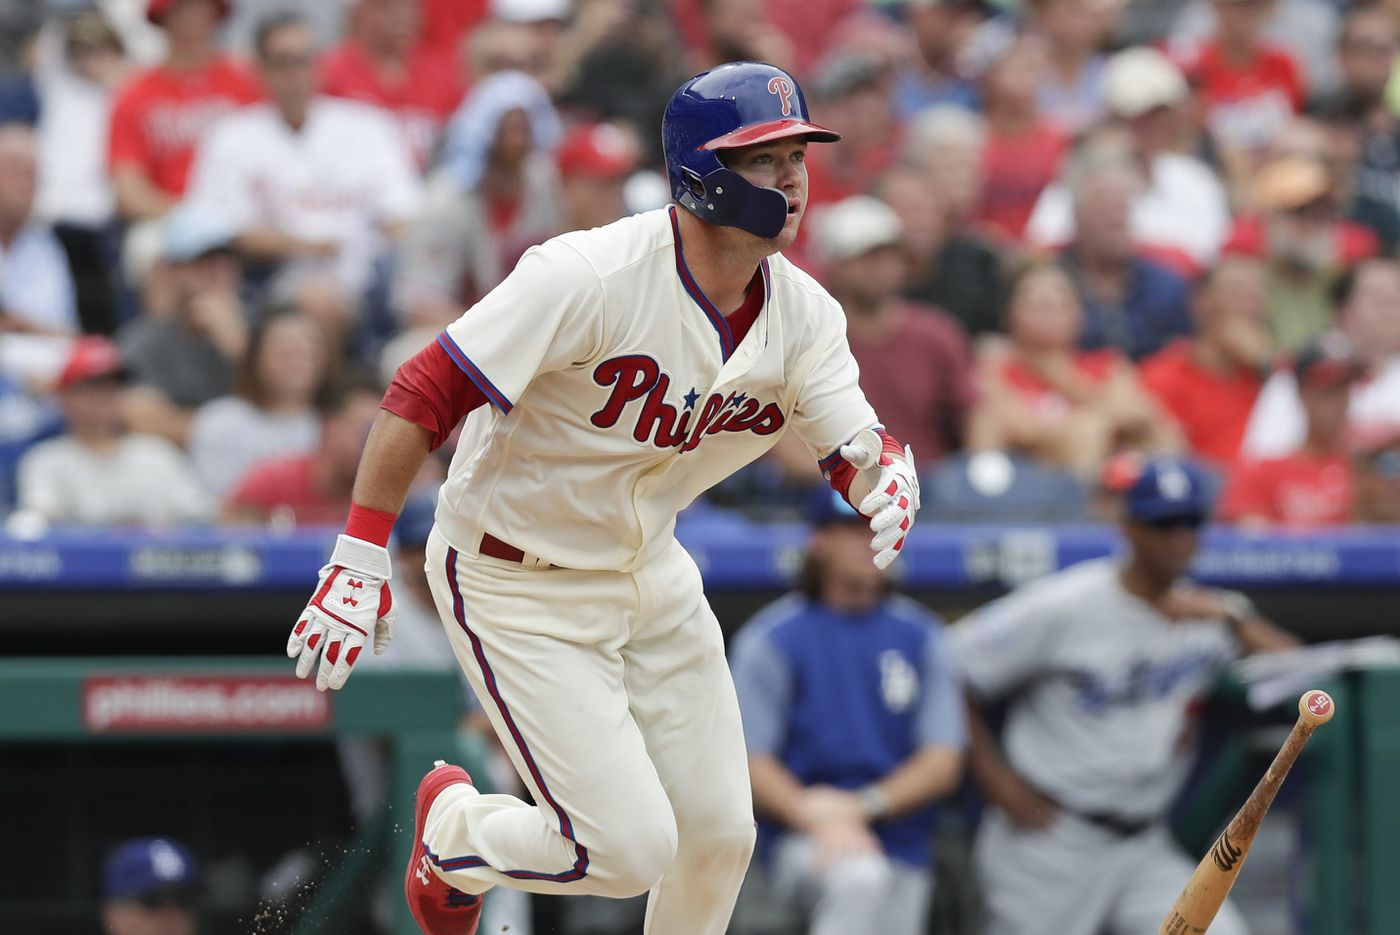 Phillies ride big fifth inning to statement-making series victory over Dodgers